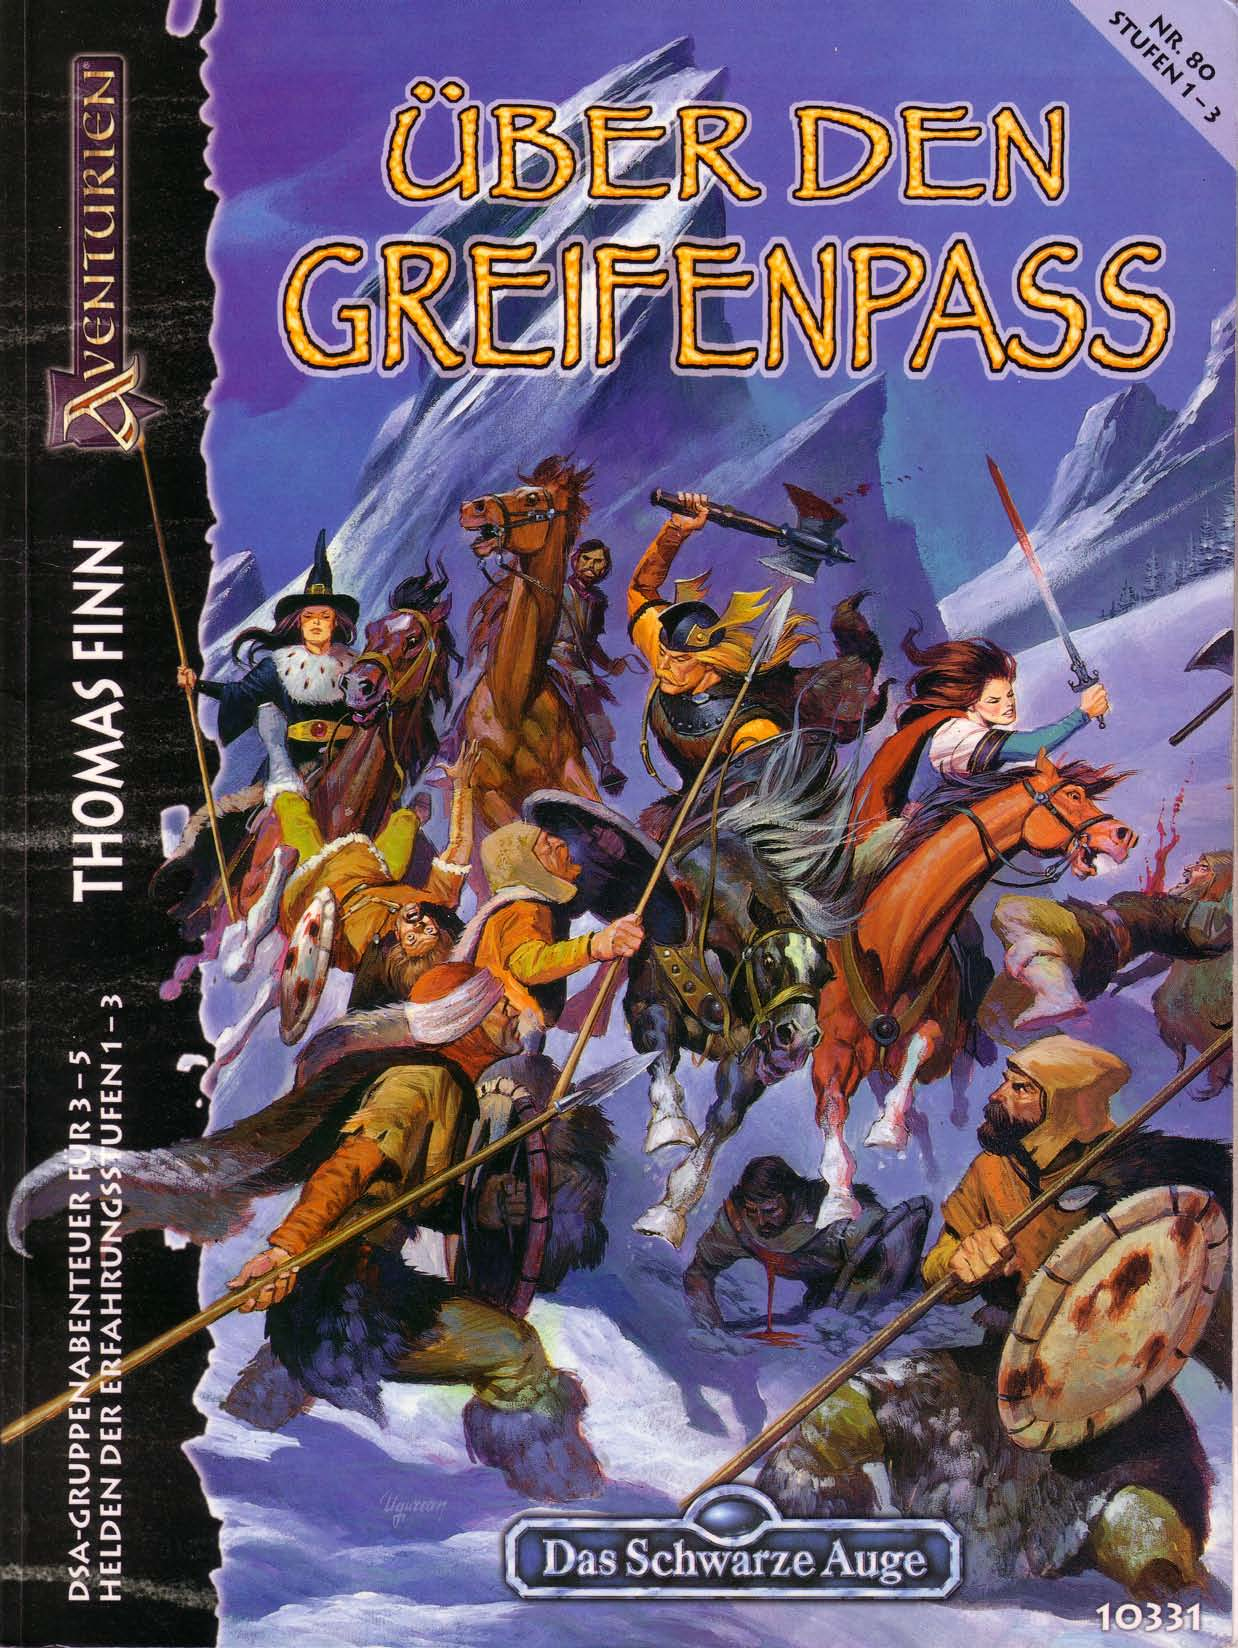 Retro-Rezension: Über den Greifenpass